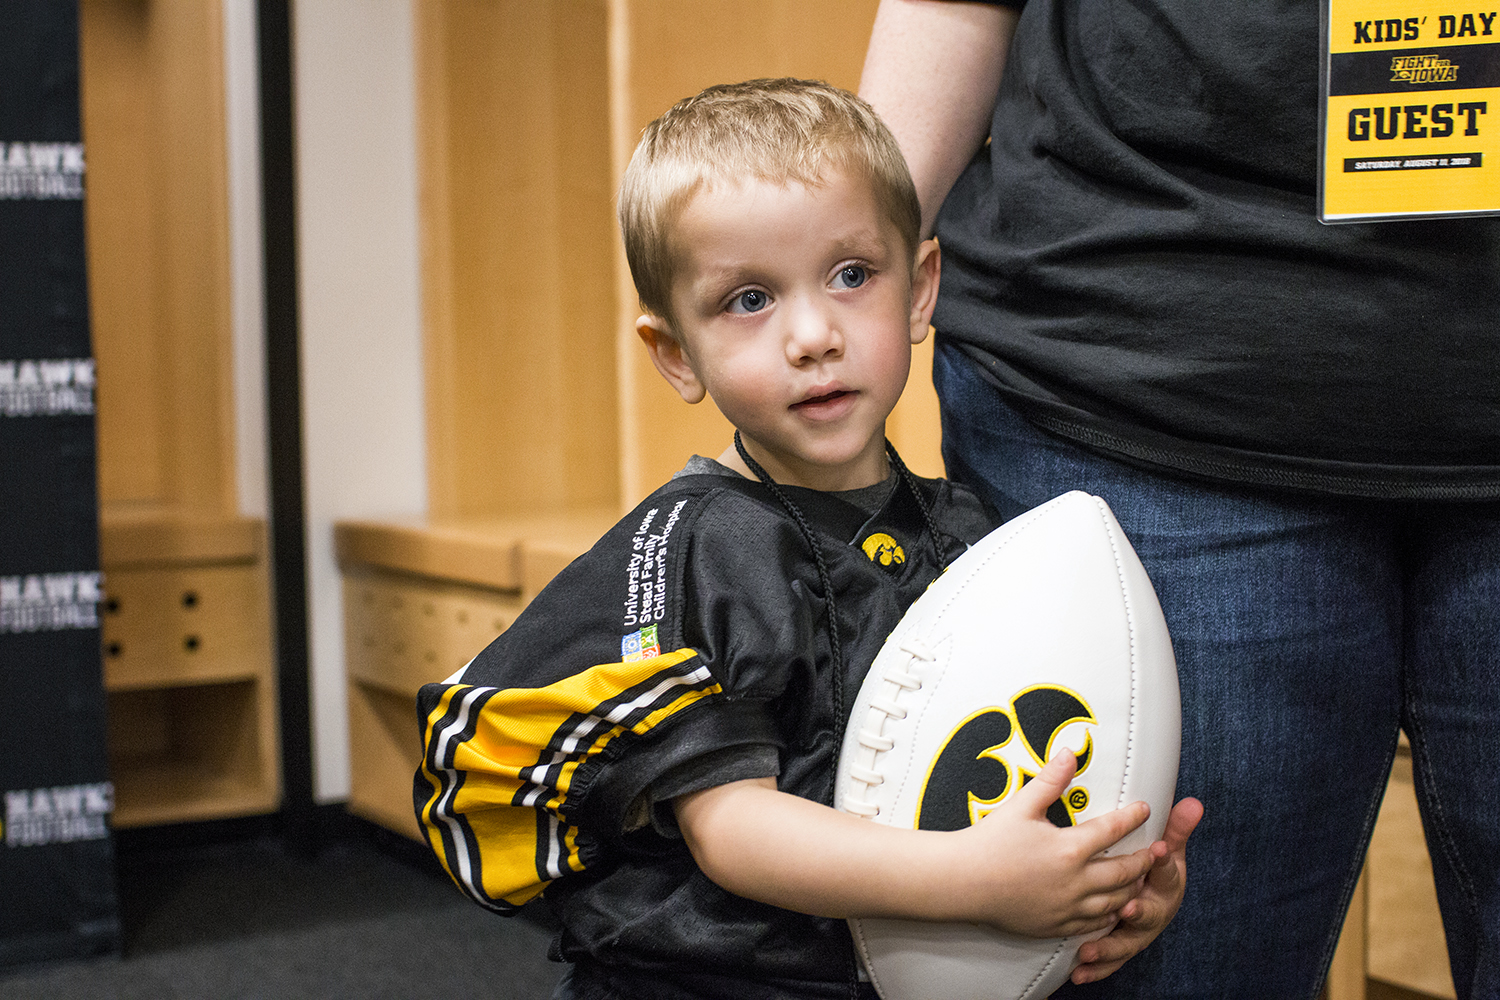 Kid+Captain+Mason+Zabel+holds+a+football+during+Iowa+Football+Kid%27s+Day+at+Kinnick+Stadium+on+Saturday%2C+Aug.+11%2C+2018.+The+2018+Kid+Captains+met+the+Iowa+football+team+and+participated+in+a+behind-the-scenes+tour+of+Kinnick+Stadium.